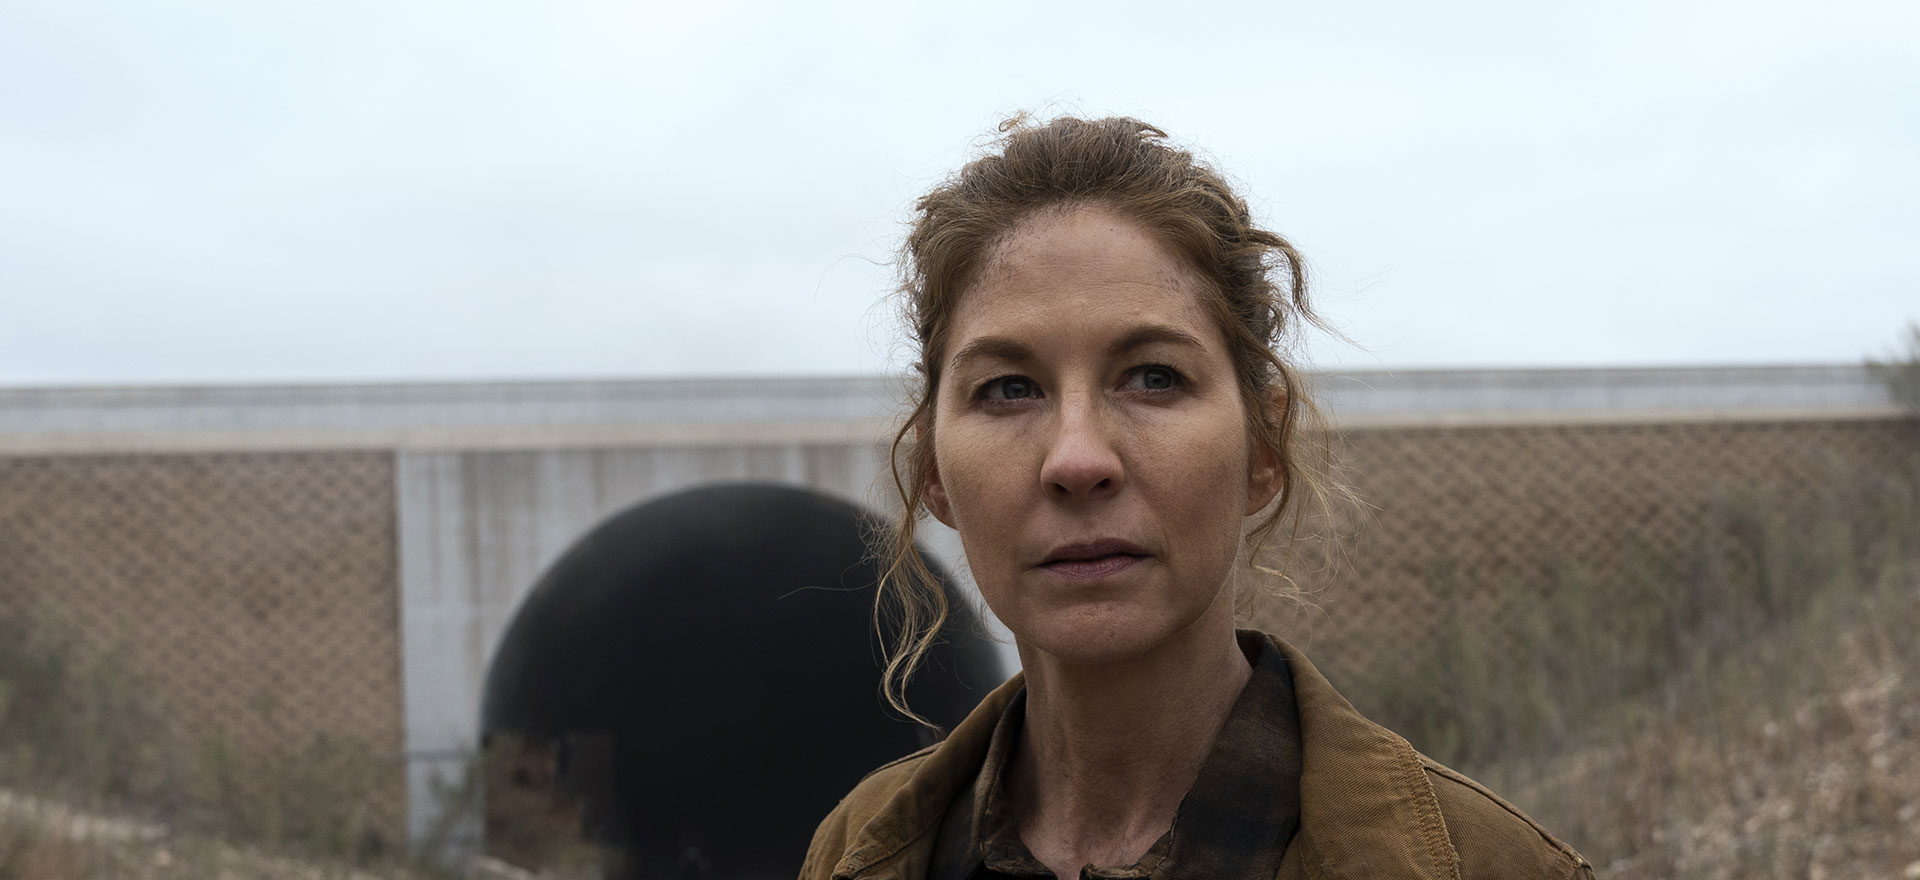 Fear the Walking Dead's Jenna Elfman Joins Make This Movie to Create a Brand New Zombie Flick